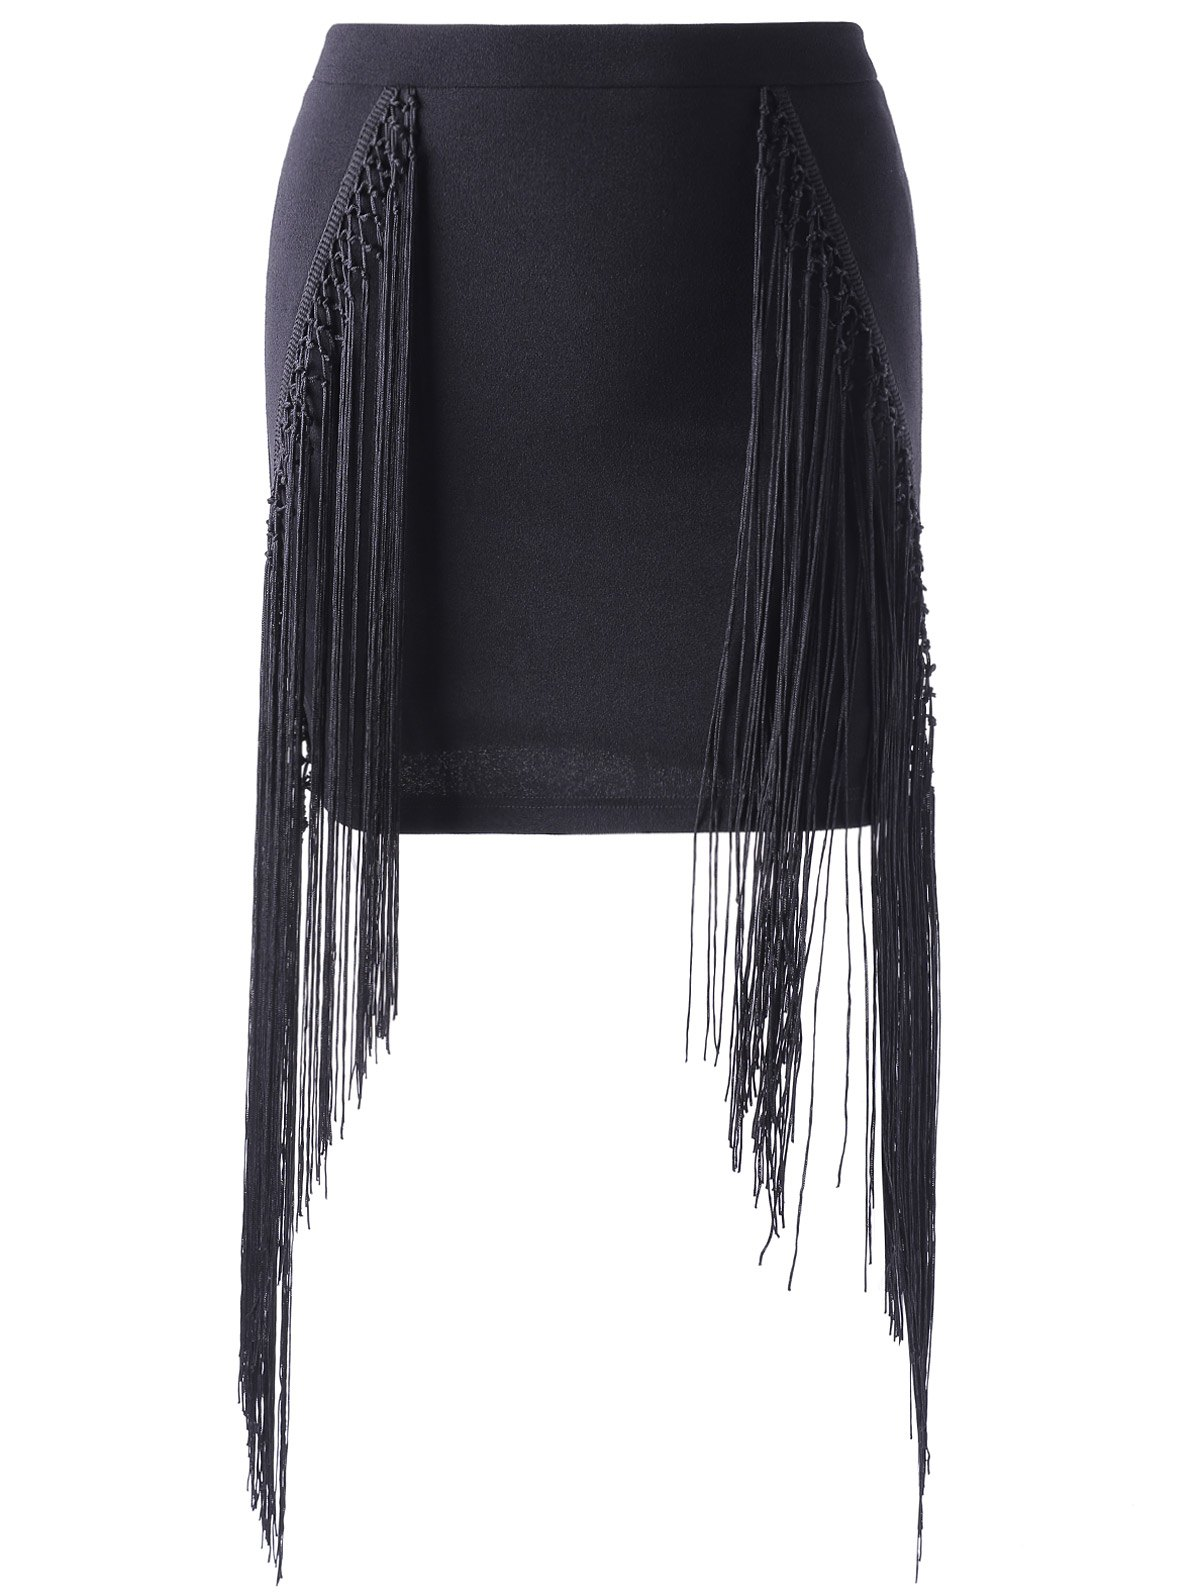 Hot Fashionable Tassels Black Short Skirt For Women